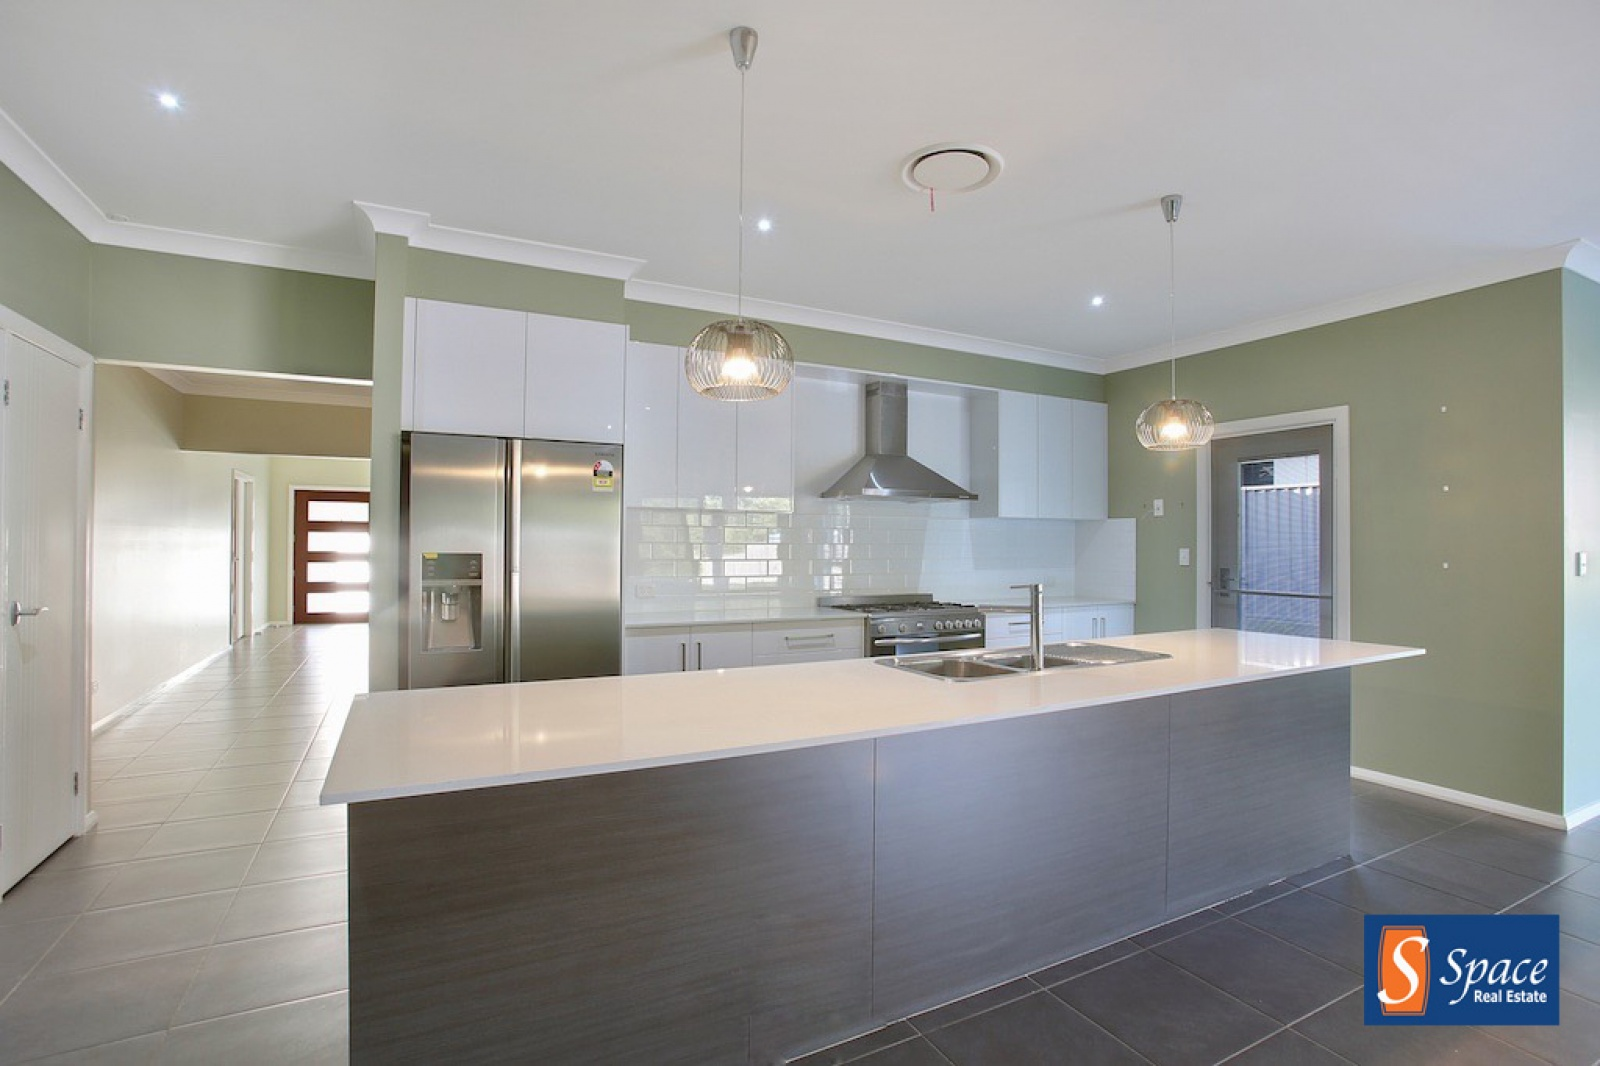 39 Hawthorne Circuit,Harrington Grove,NSW,5 Bedrooms Bedrooms,3 BathroomsBathrooms,House,Hawthorne Circuit,1469